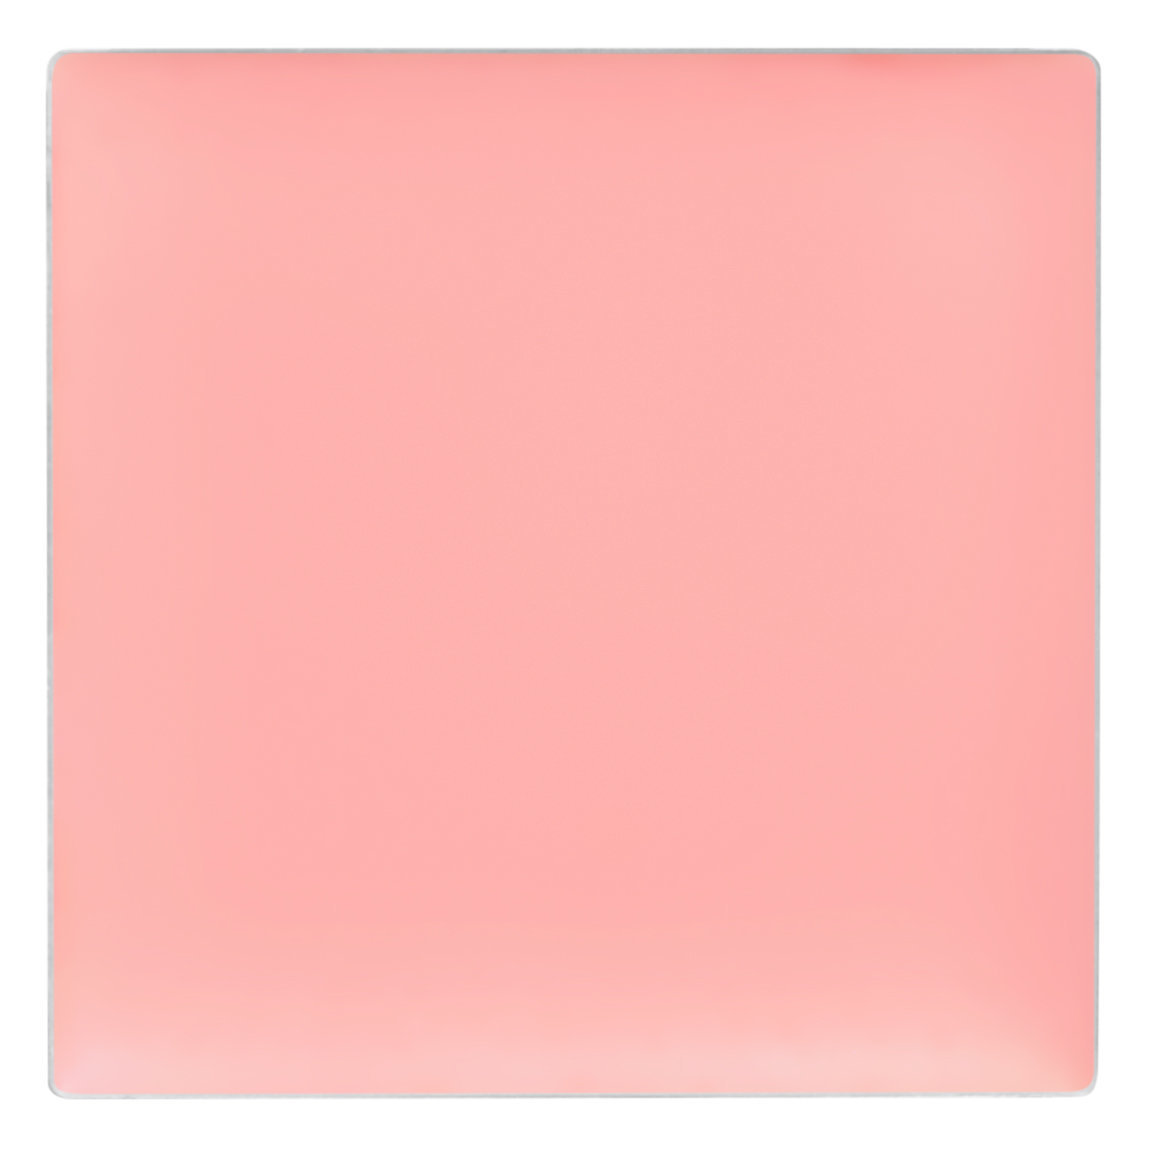 Kjaer Weis Cream Blush Refill Embrace alternative view 1 - product swatch.